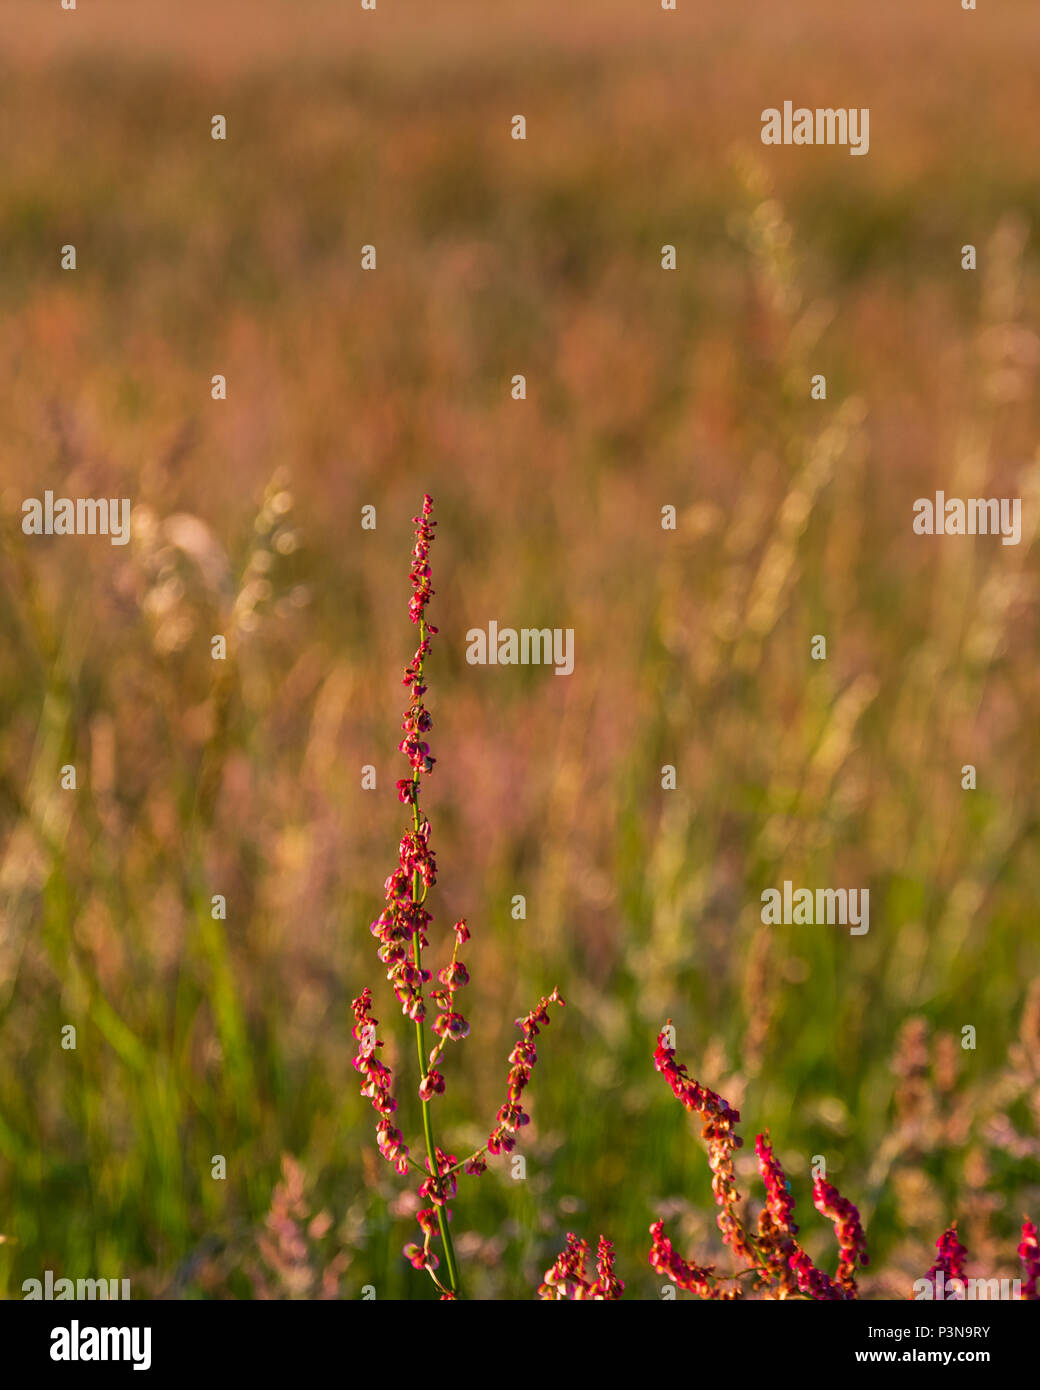 Small red flower stalks grow next to a meadow in the Chilterns - Stock Image